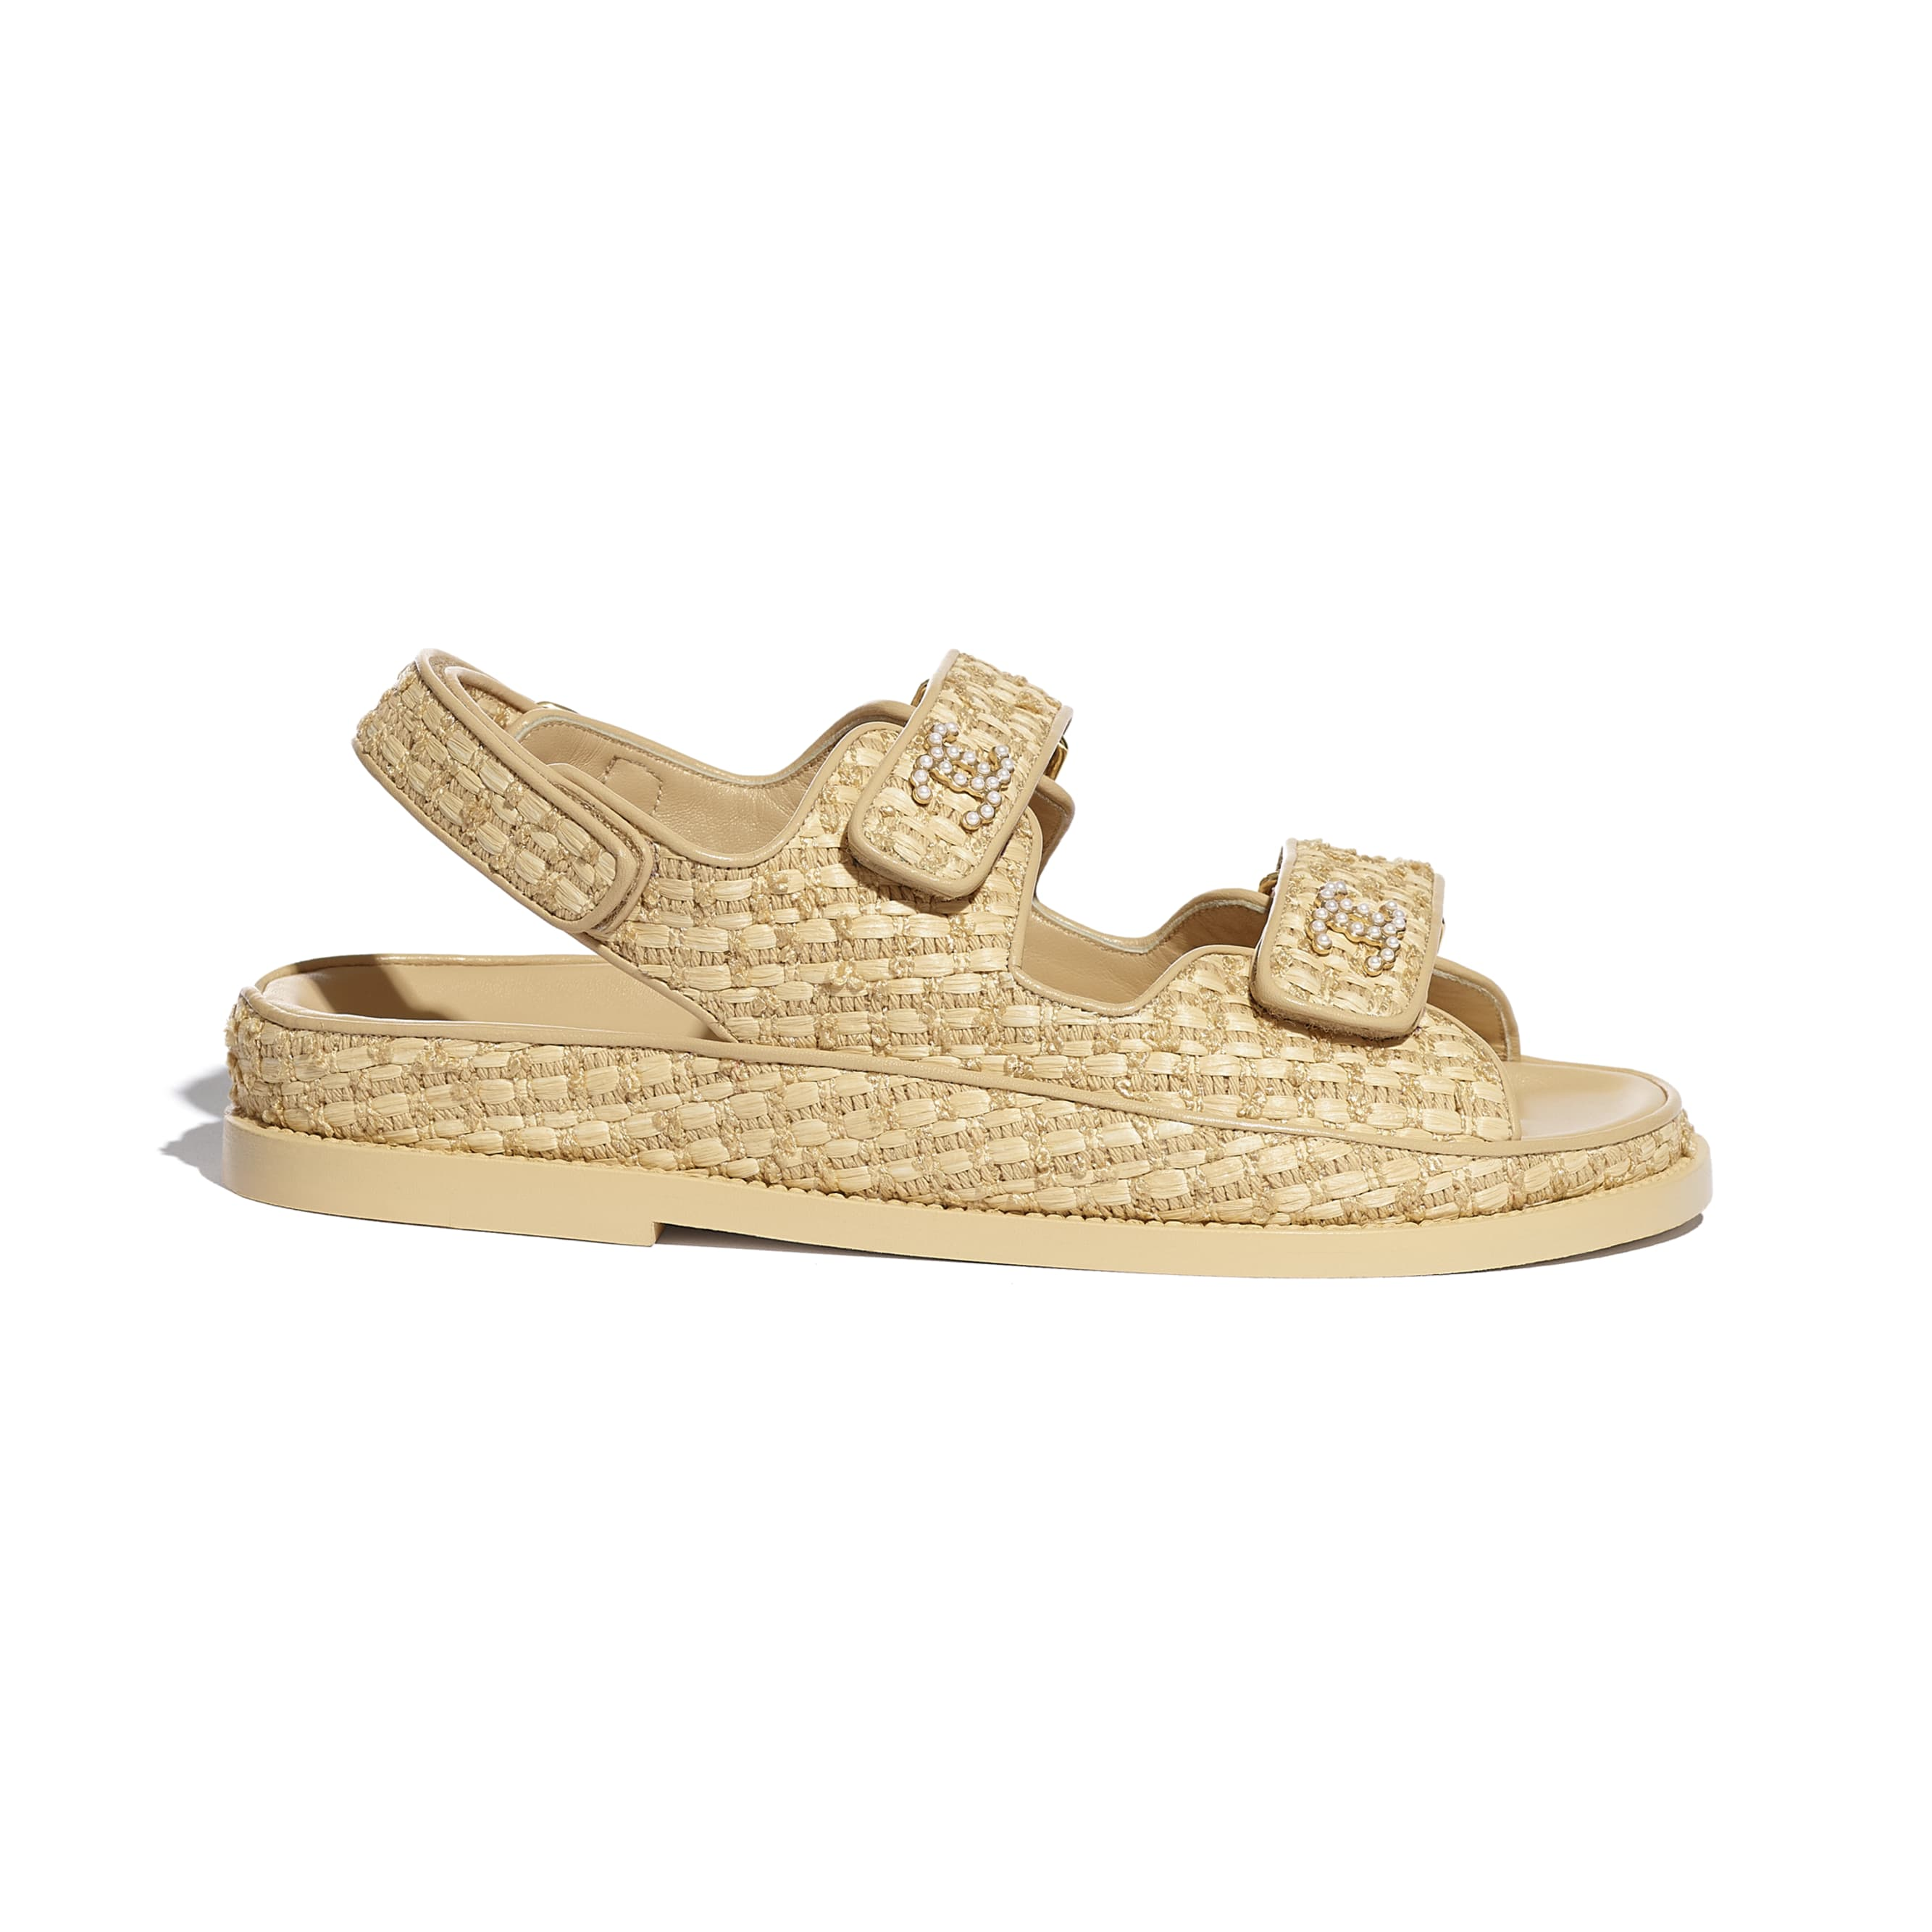 Sandals - Beige - Braided Fabric - CHANEL - Default view - see standard sized version